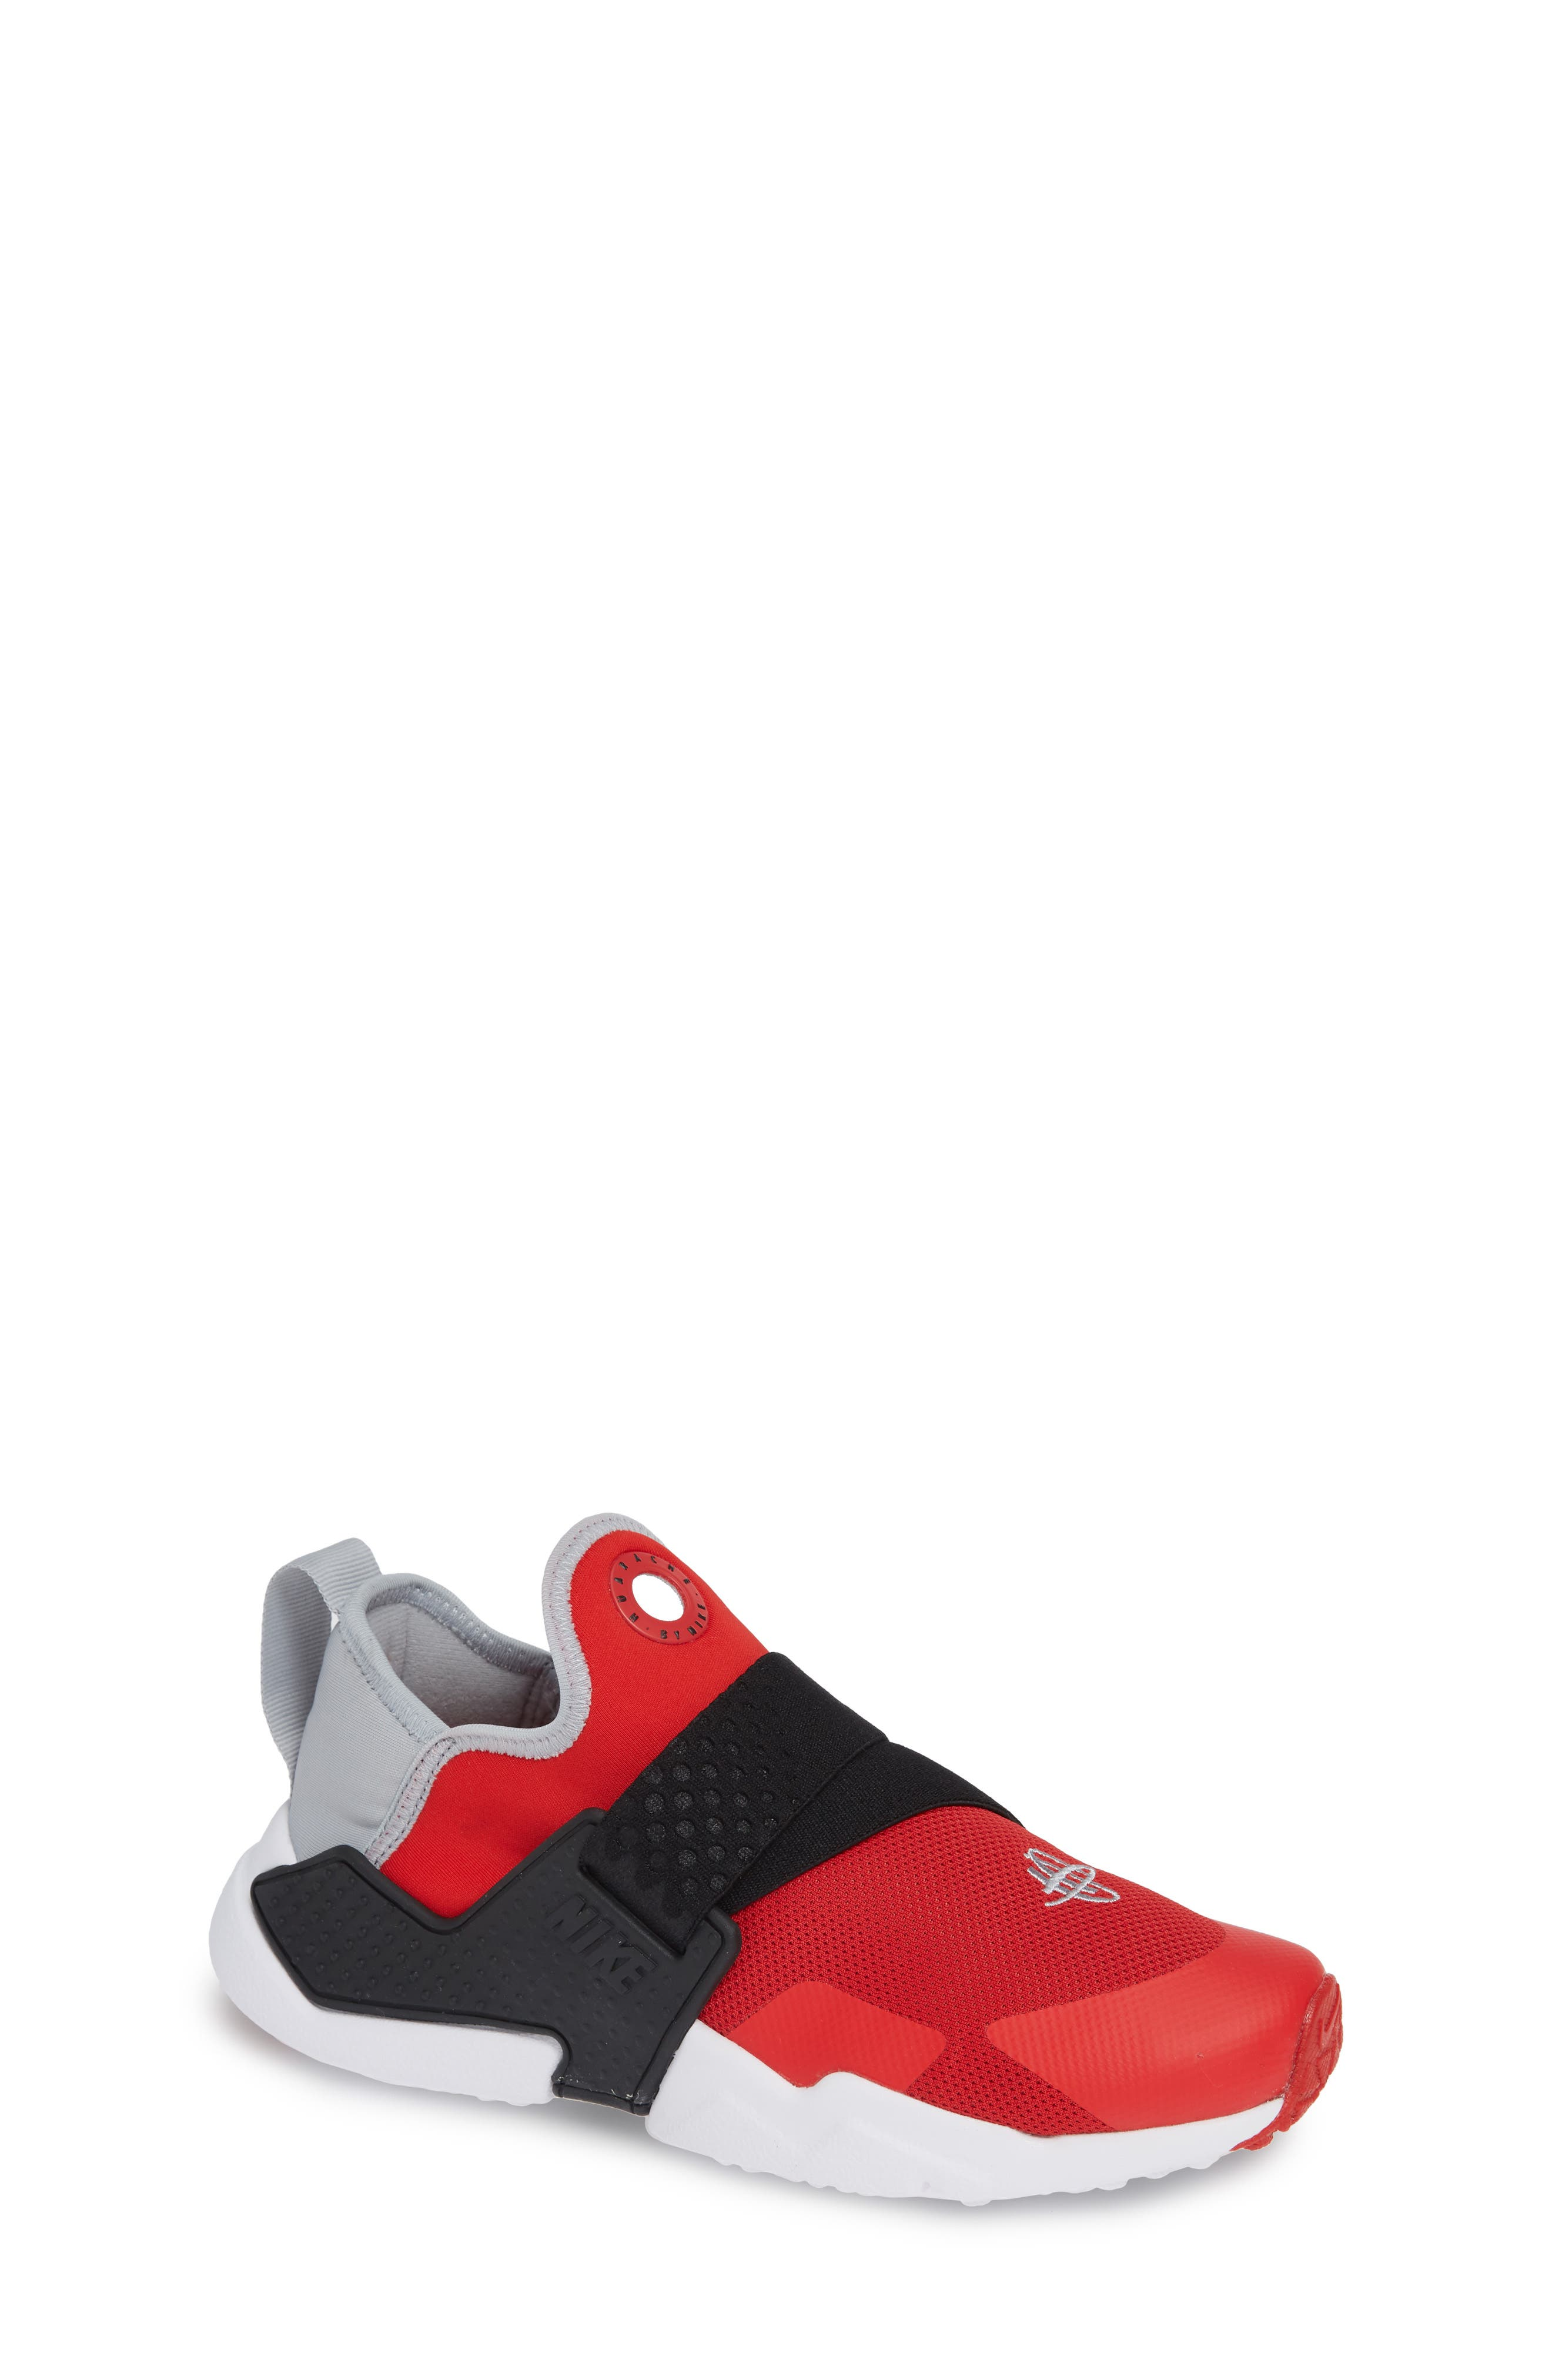 Huarache Extreme Sneaker,                         Main,                         color, RED/ GREY/ BLACK/ WHITE